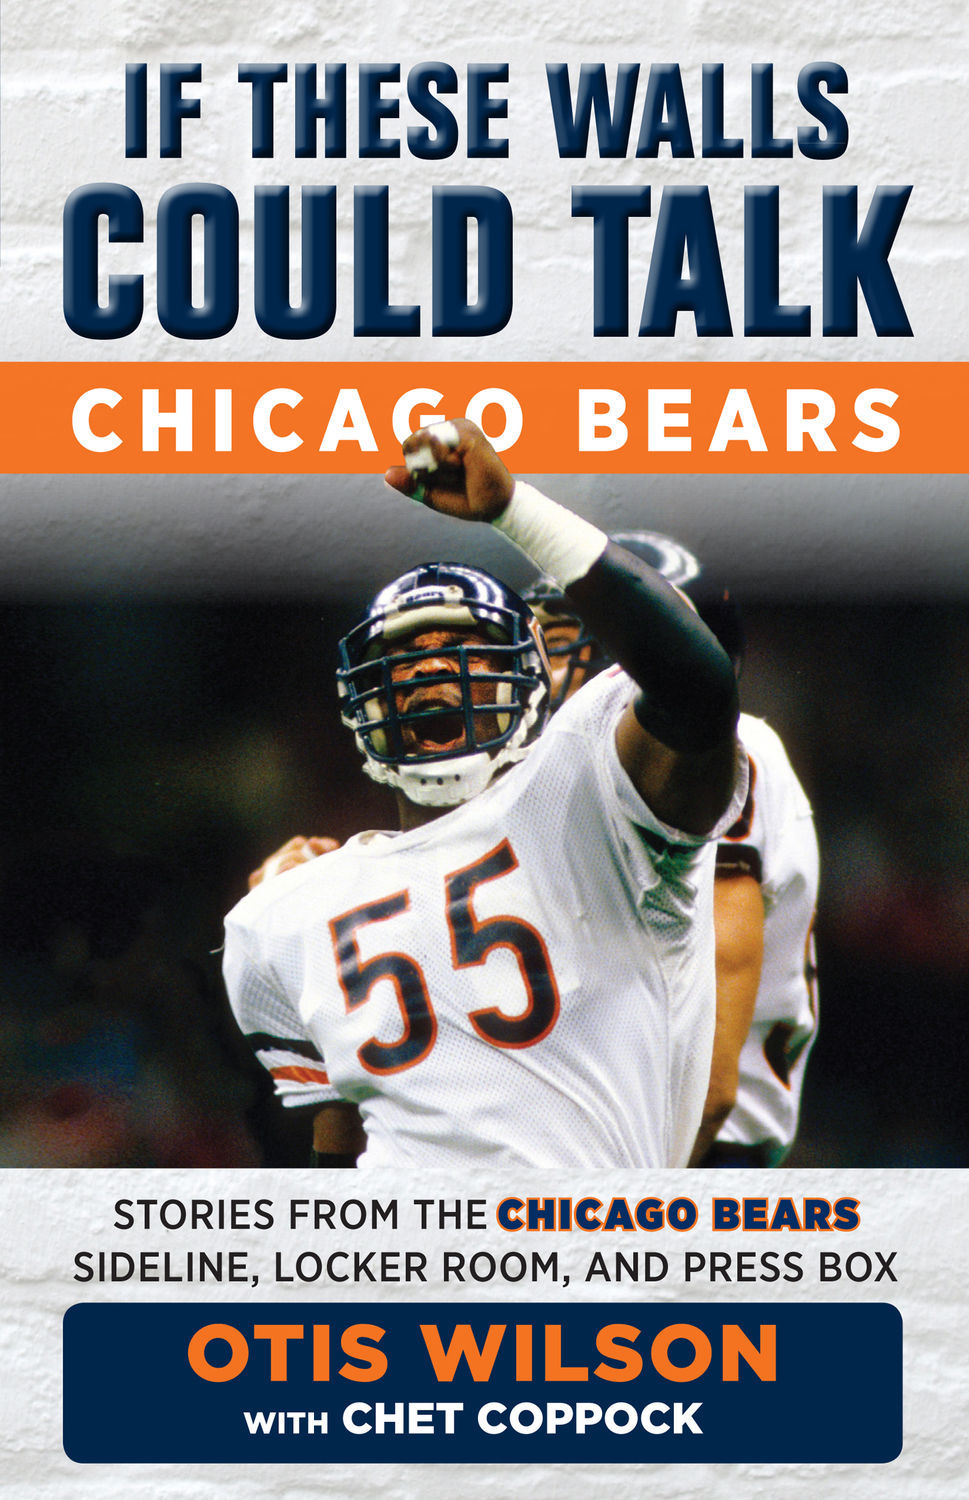 """If These Walls Could Talk: Chicago Bears: Stories from the Chicago Bears Sideline, Locker Room, and Press Box"" (Triumph Books 2017; $16.95)."